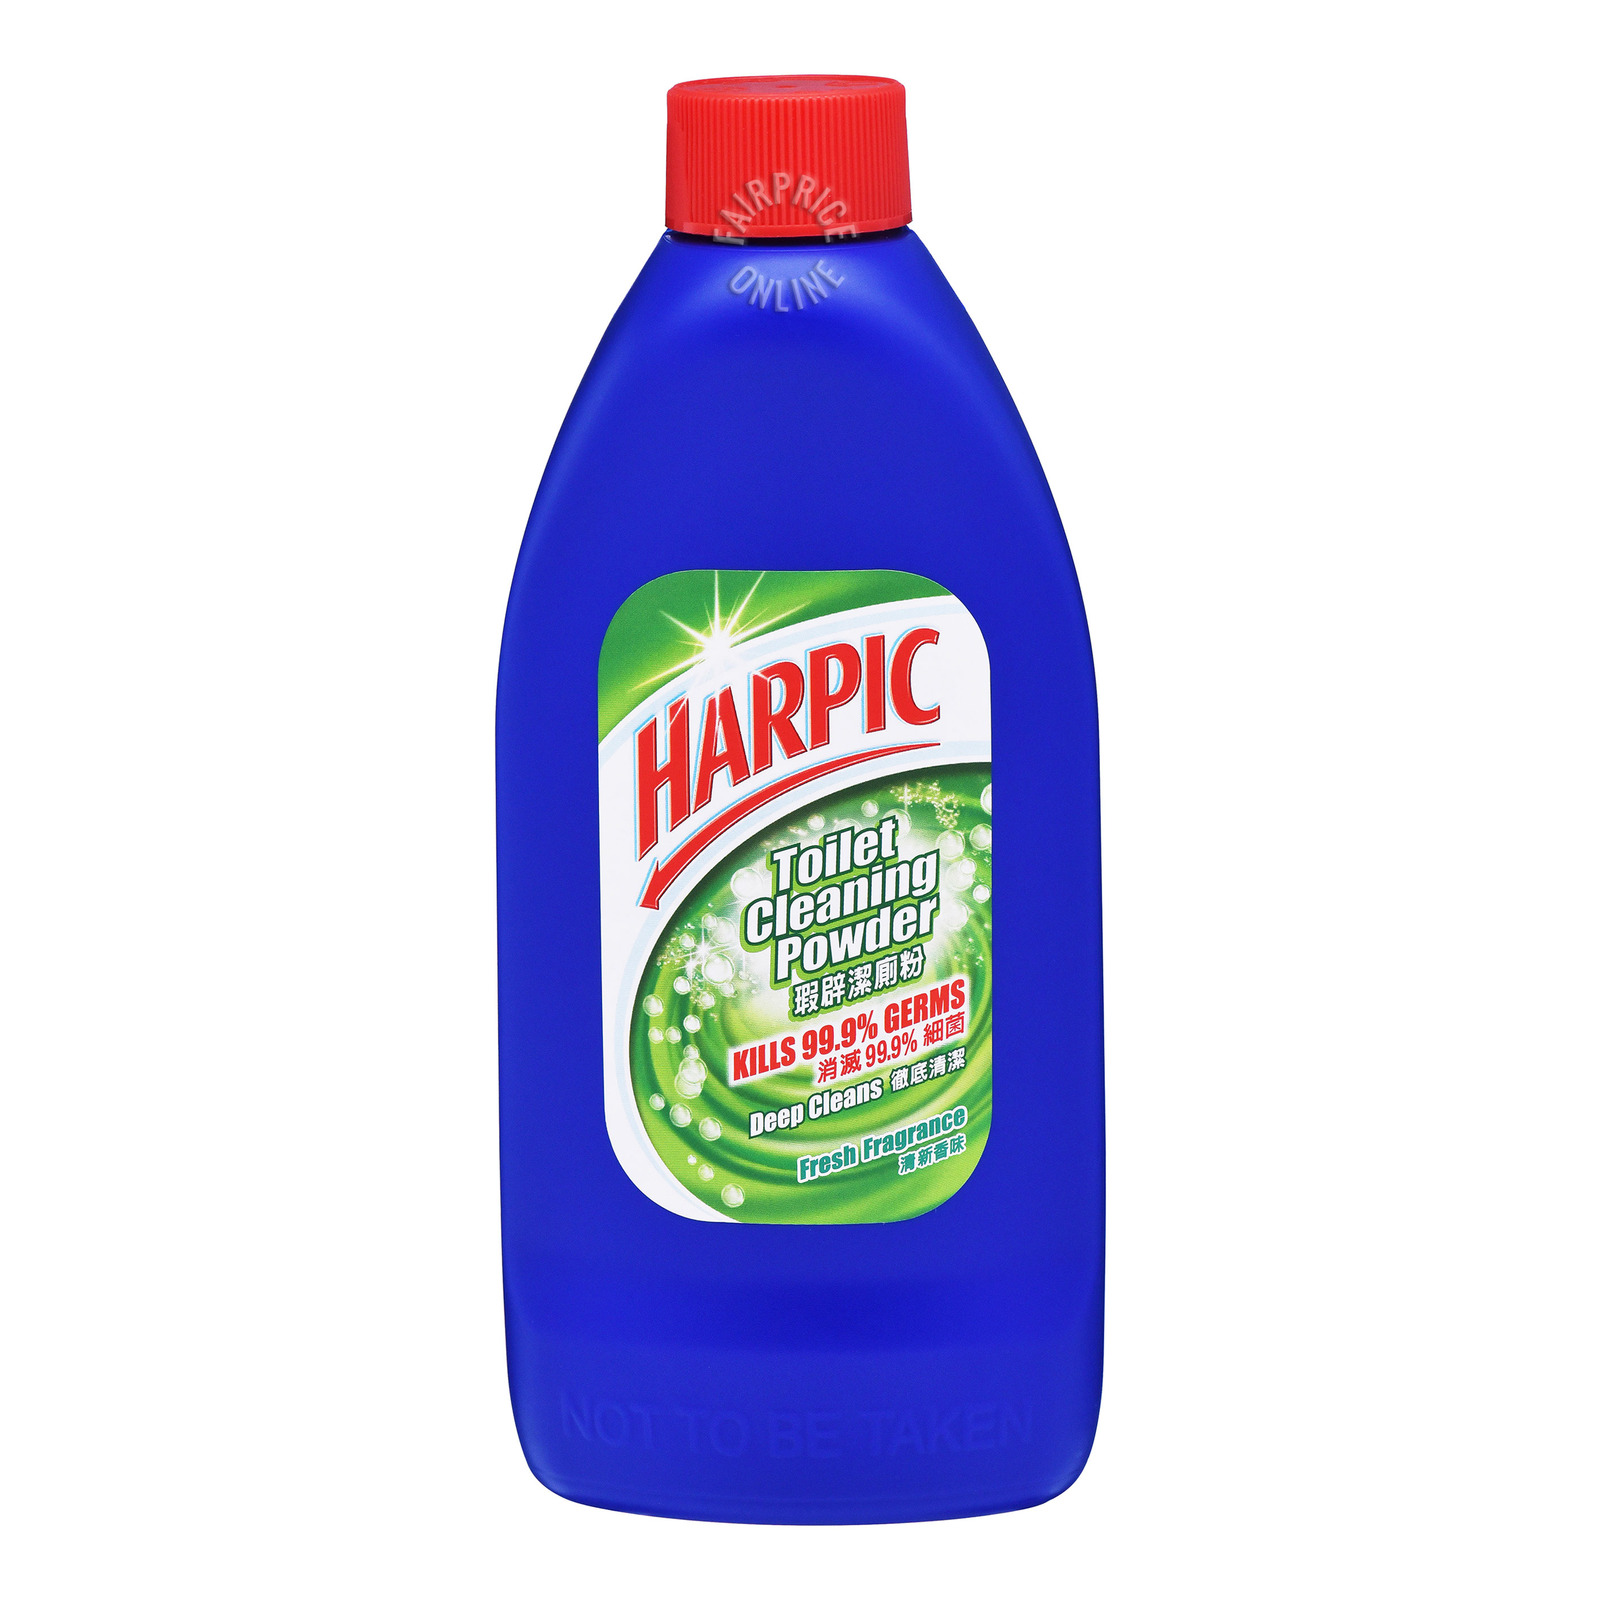 Harpic Toilet Cleaning Powder - Fresh Fragrance